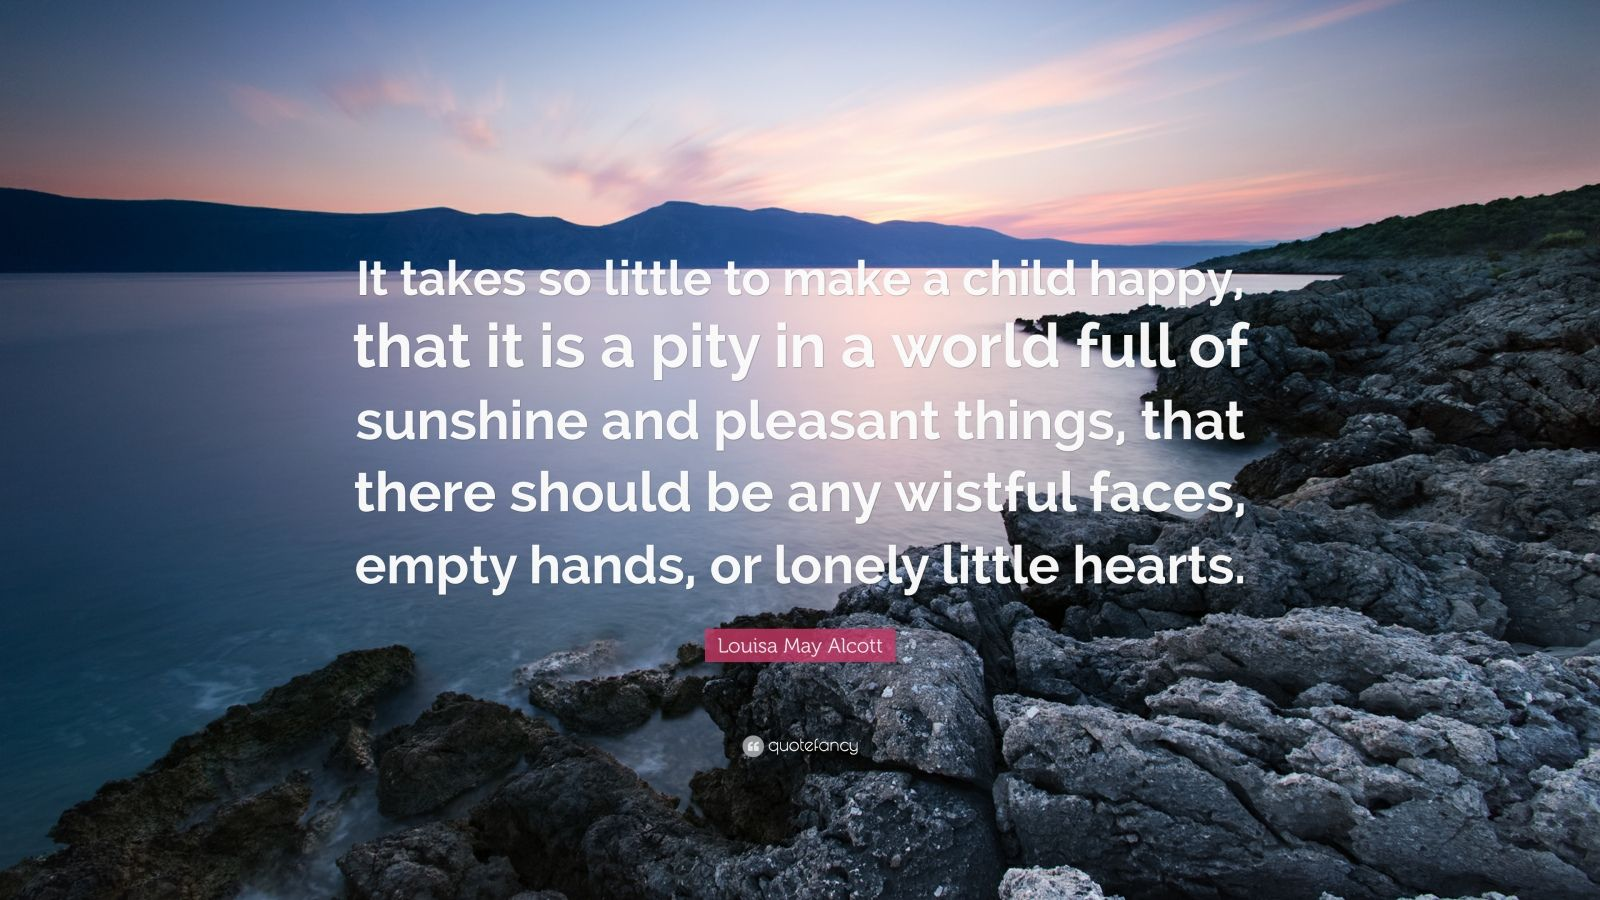 """Louisa May Alcott Quote: """"It takes so little to make a child happy, that it is a pity in a world full of sunshine and pleasant things, that there should be any wistful faces, empty hands, or lonely little hearts."""""""